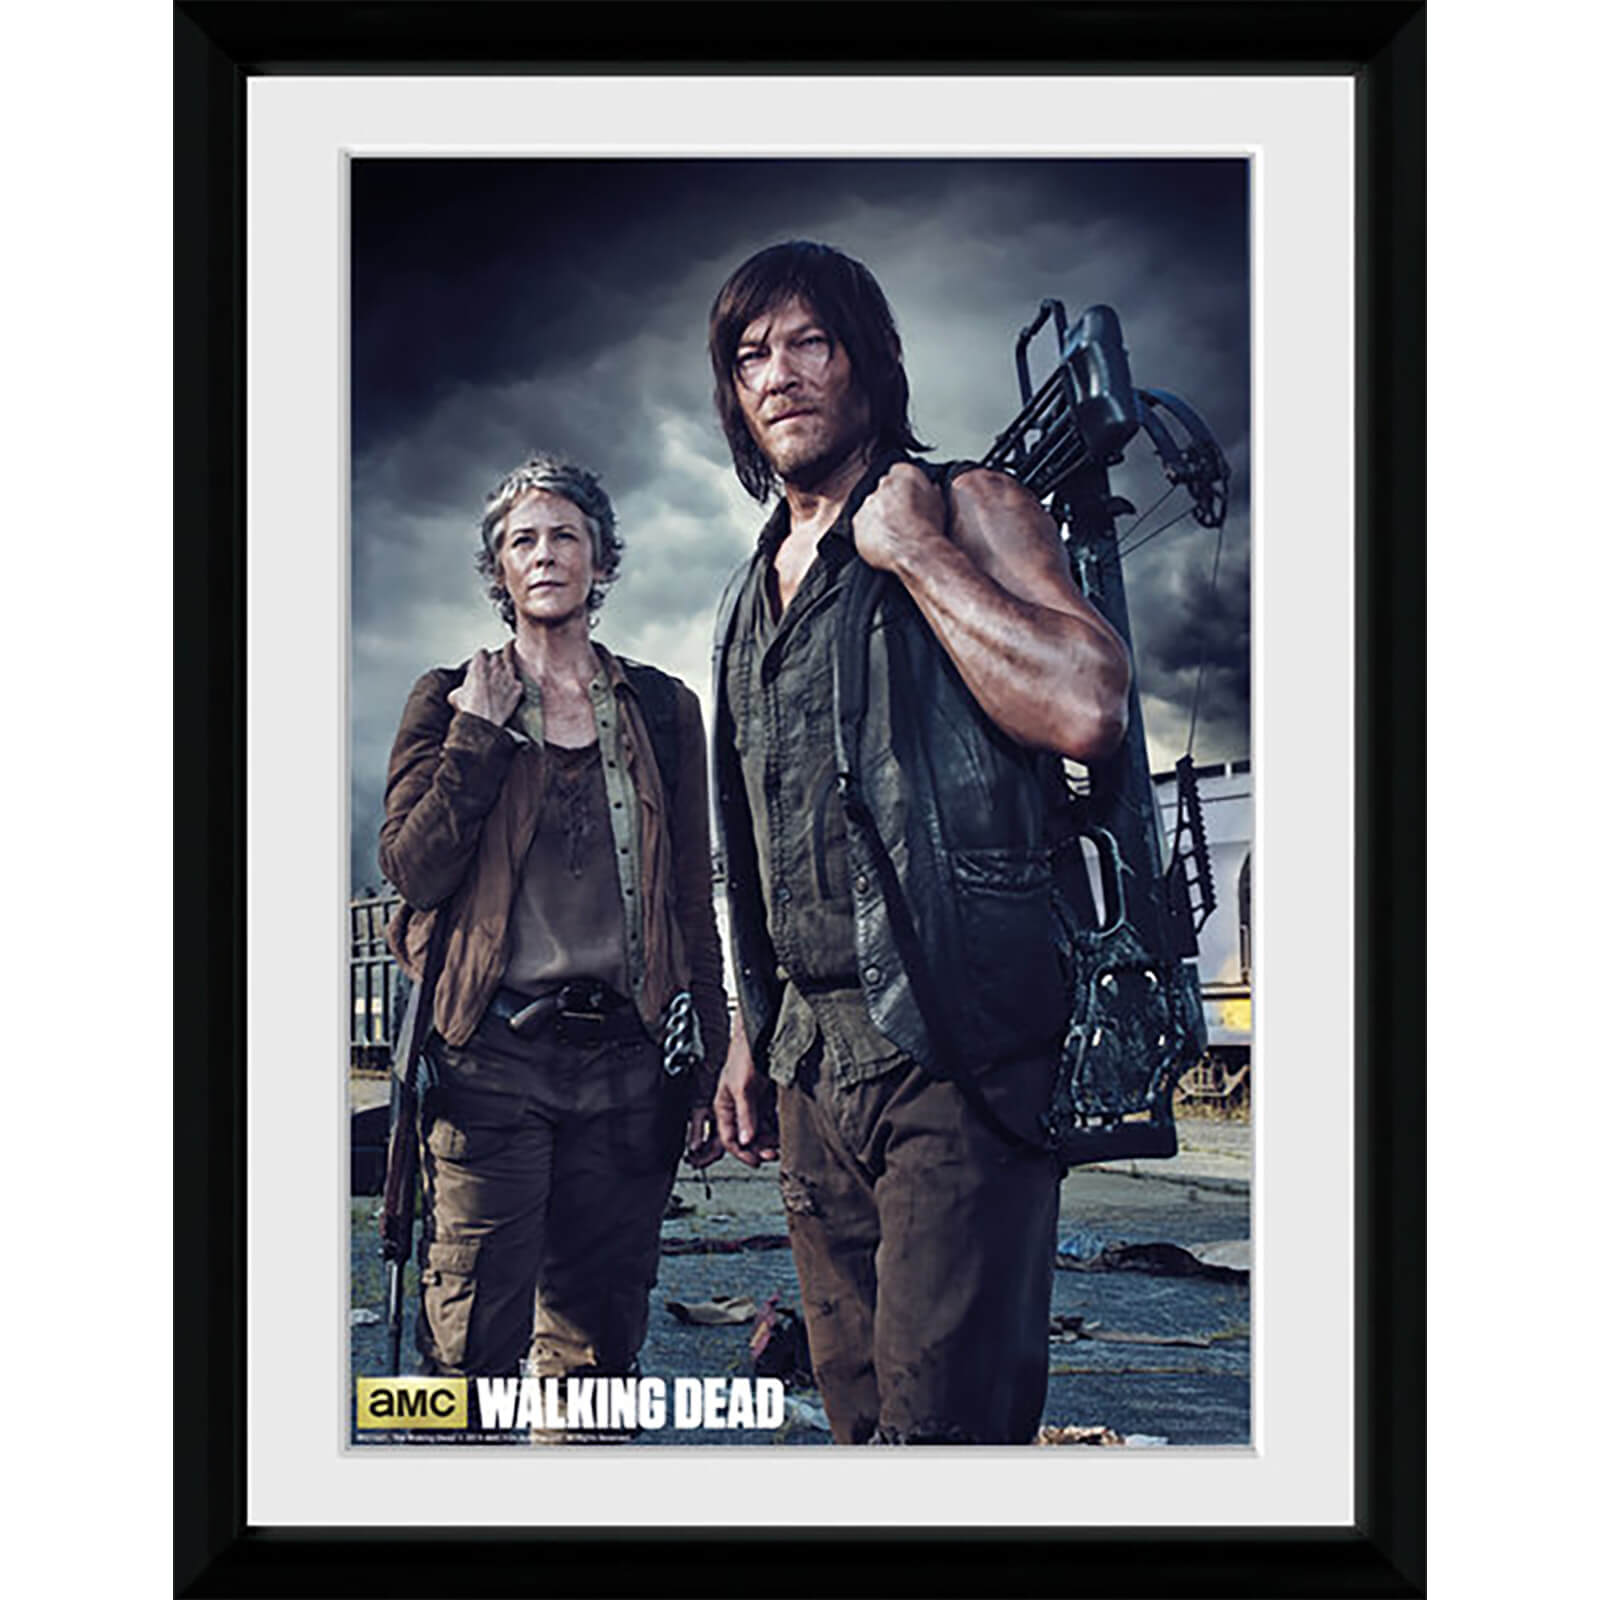 The Walking Dead Carol and Daryl - Framed Photographic - 16 x 12inch